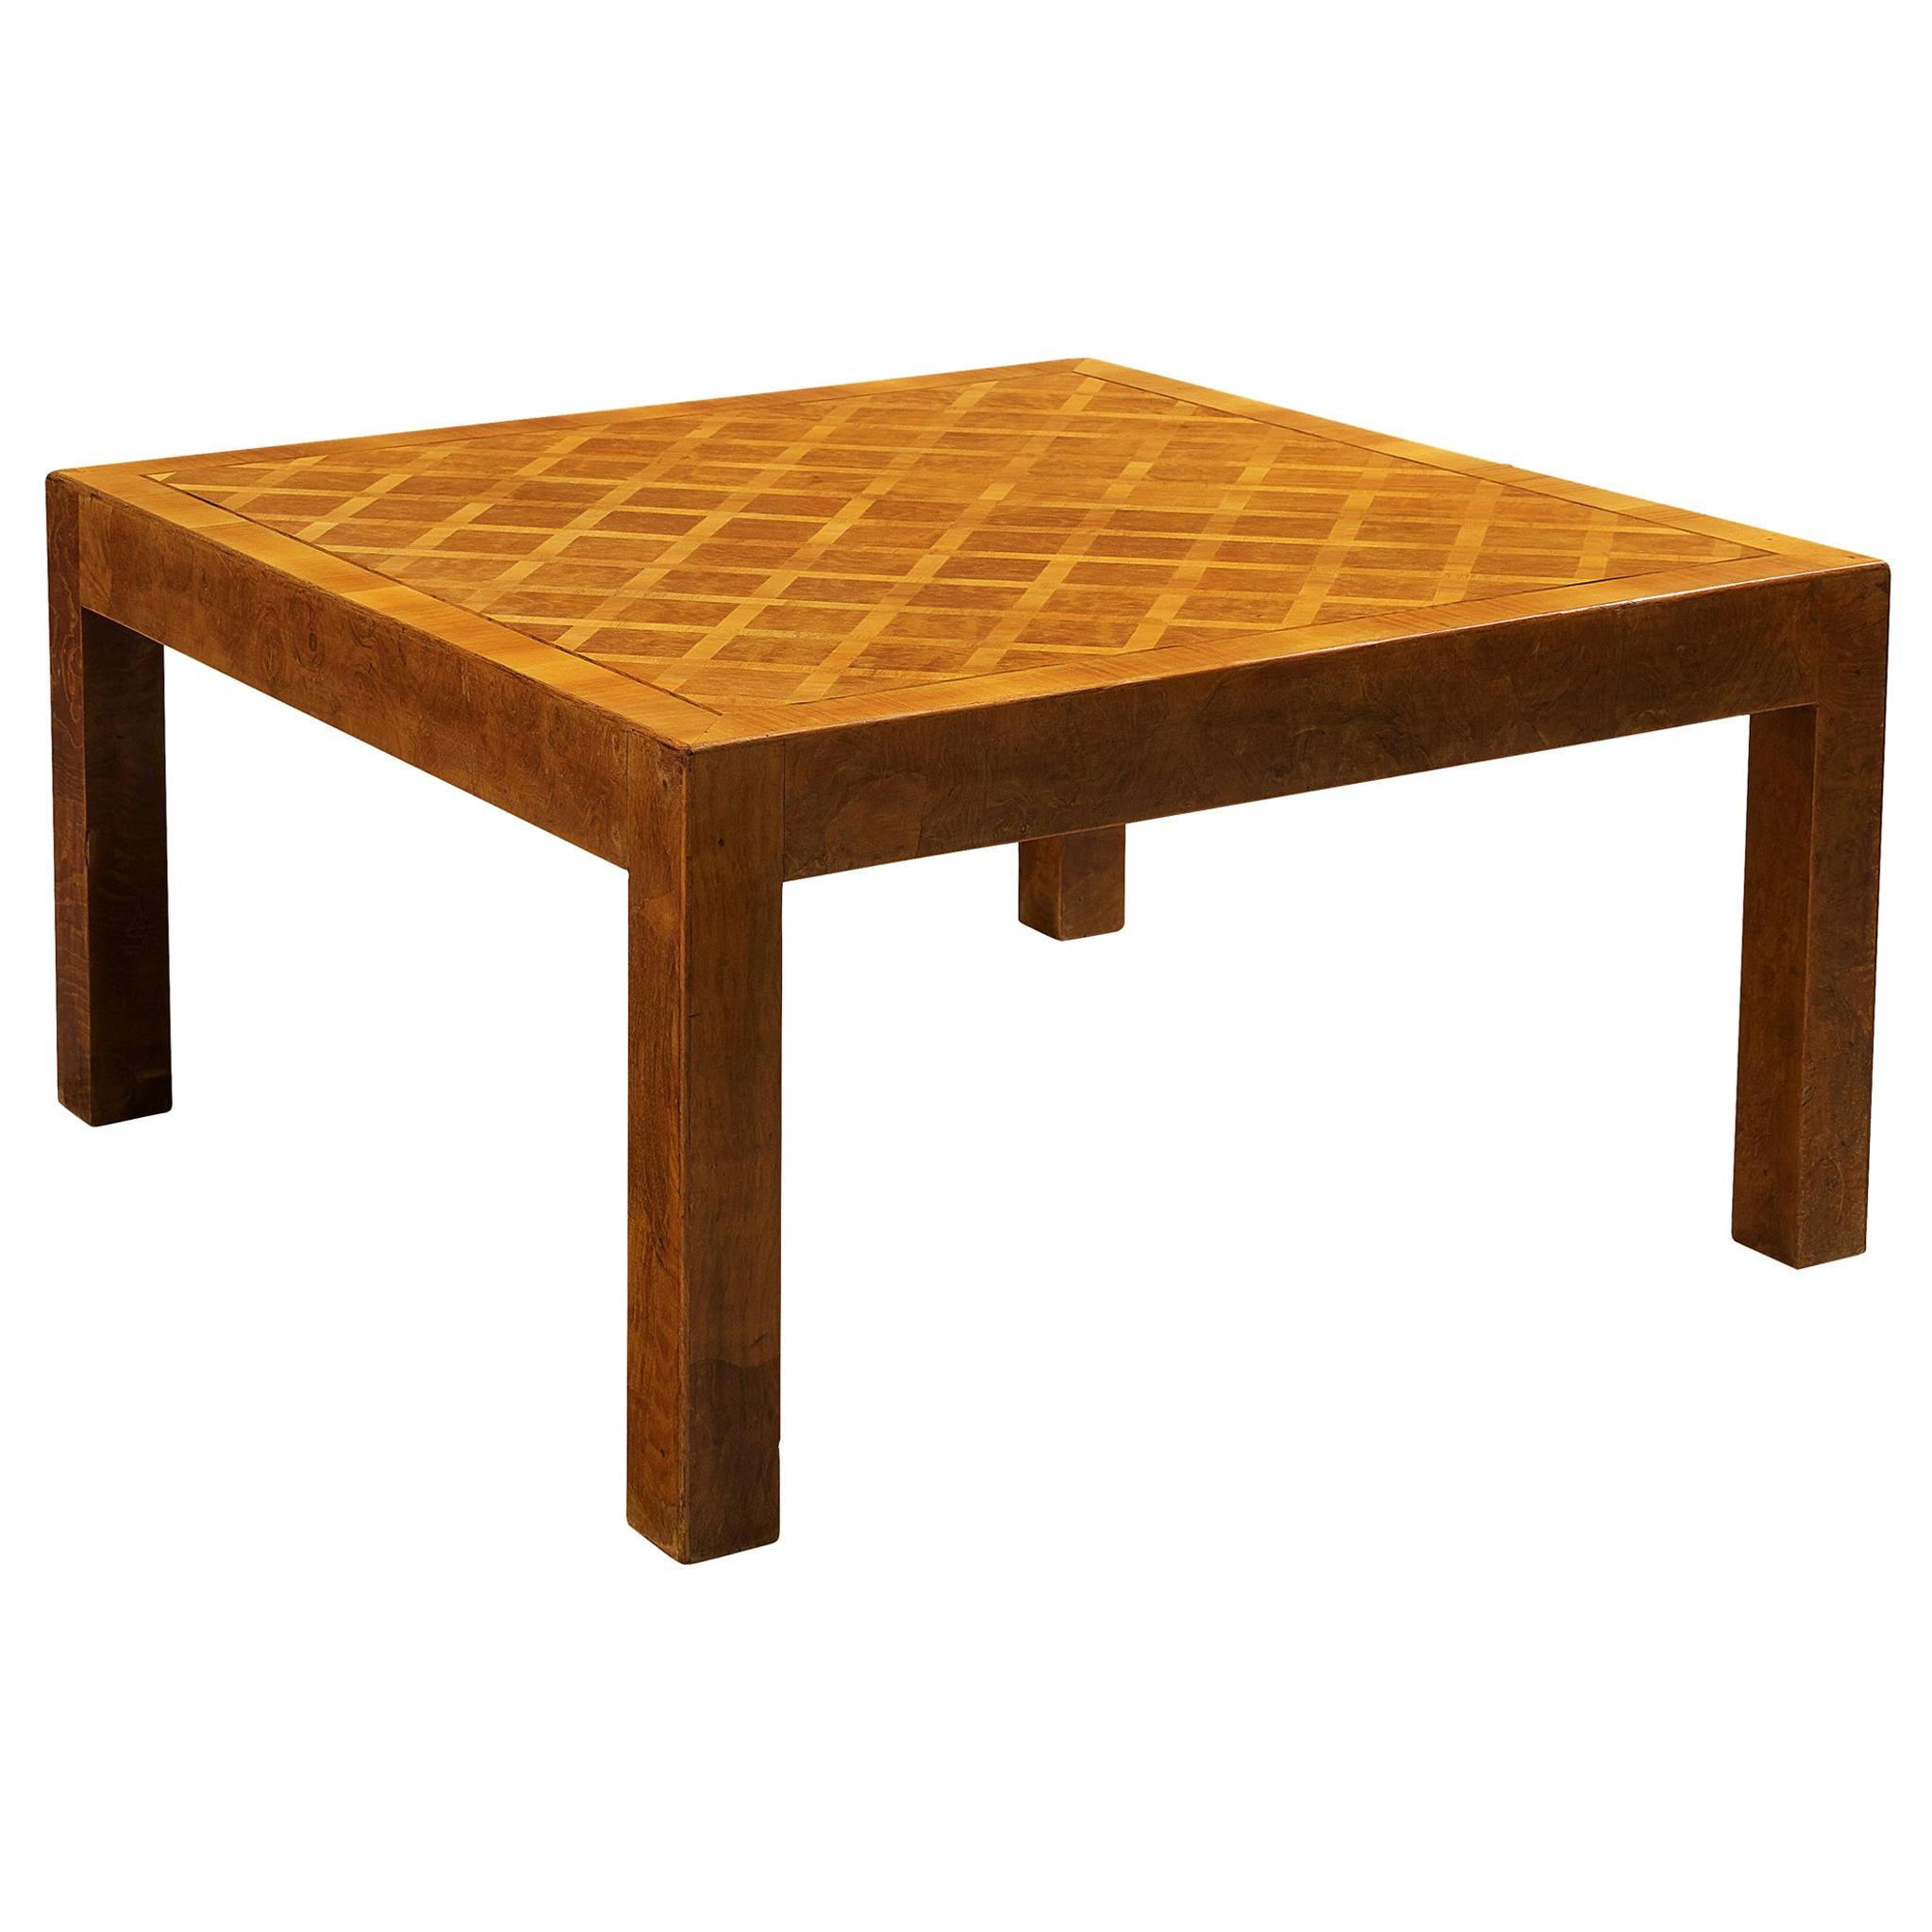 Square Coffee Table with Parquetry in Walnut